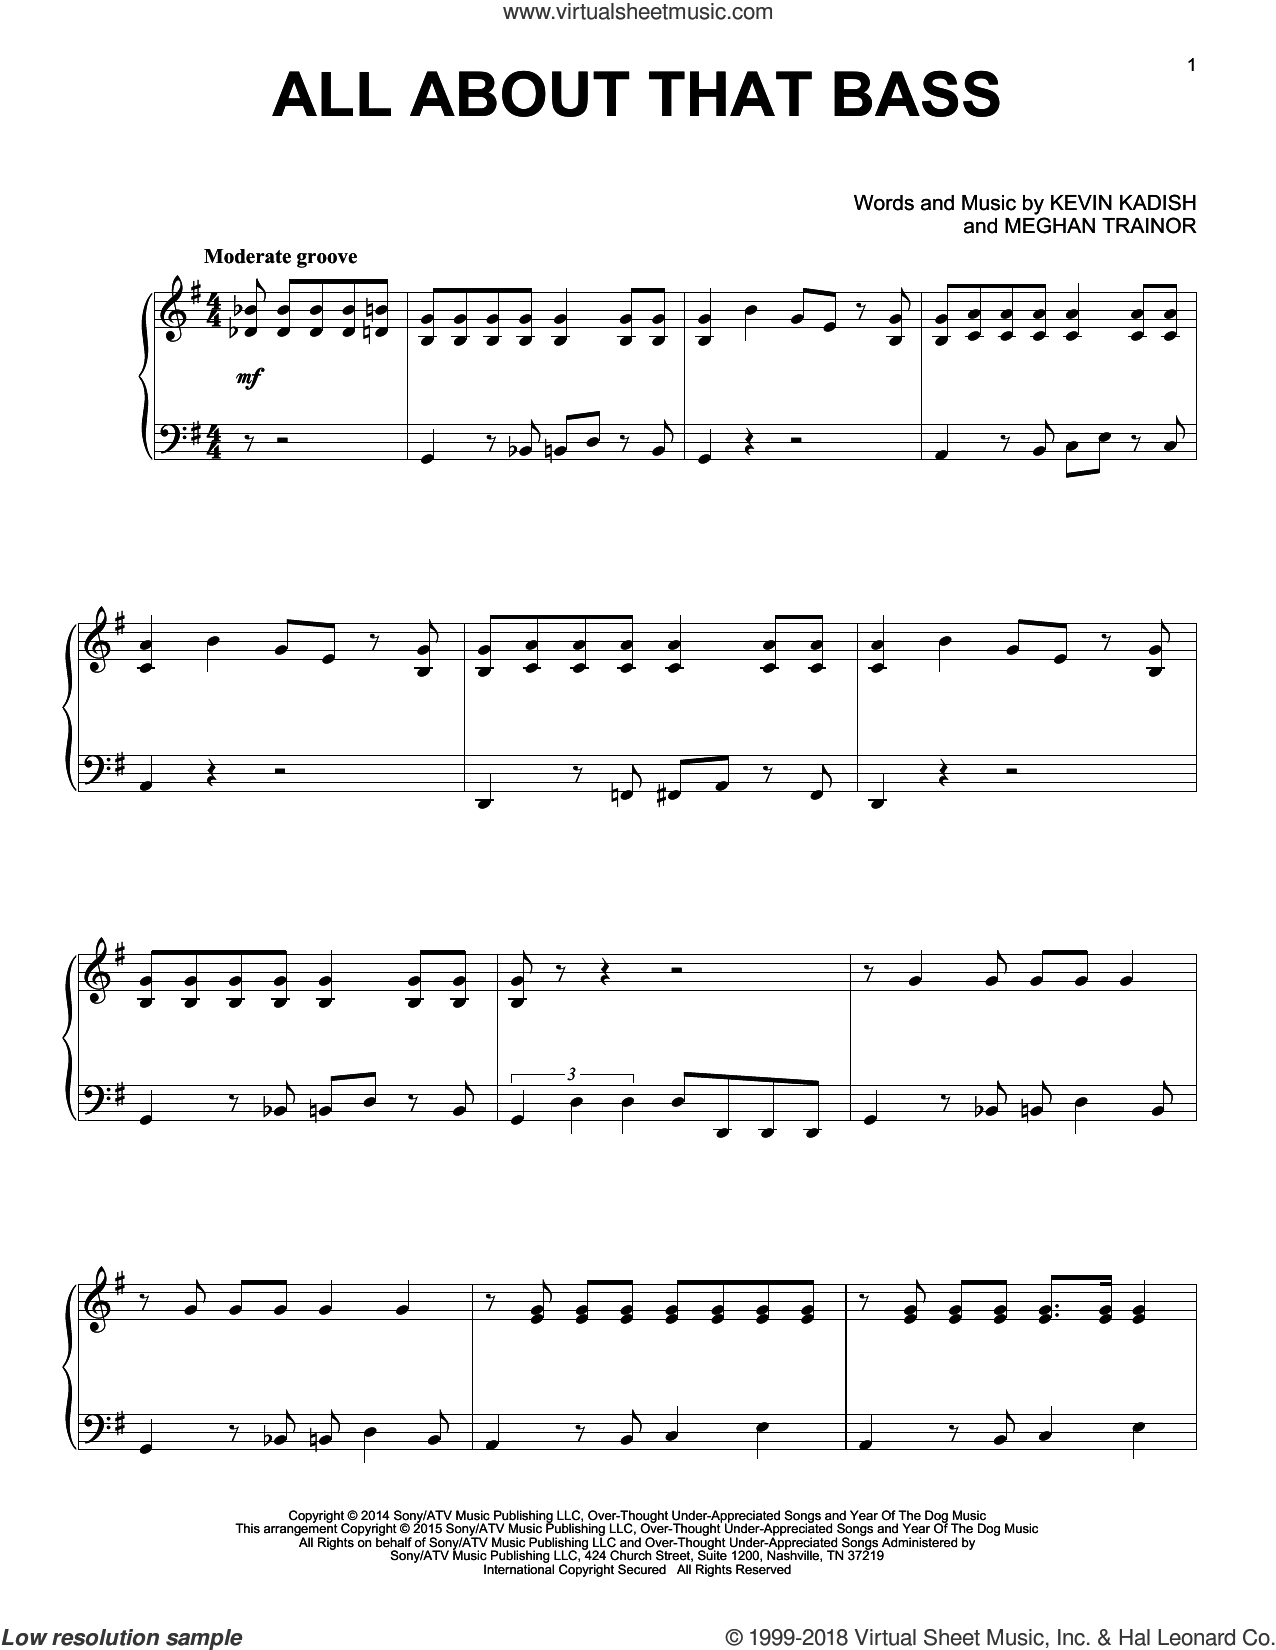 All About That Bass sheet music for piano solo by Meghan Trainor and Kevin Kadish, intermediate piano. Score Image Preview.